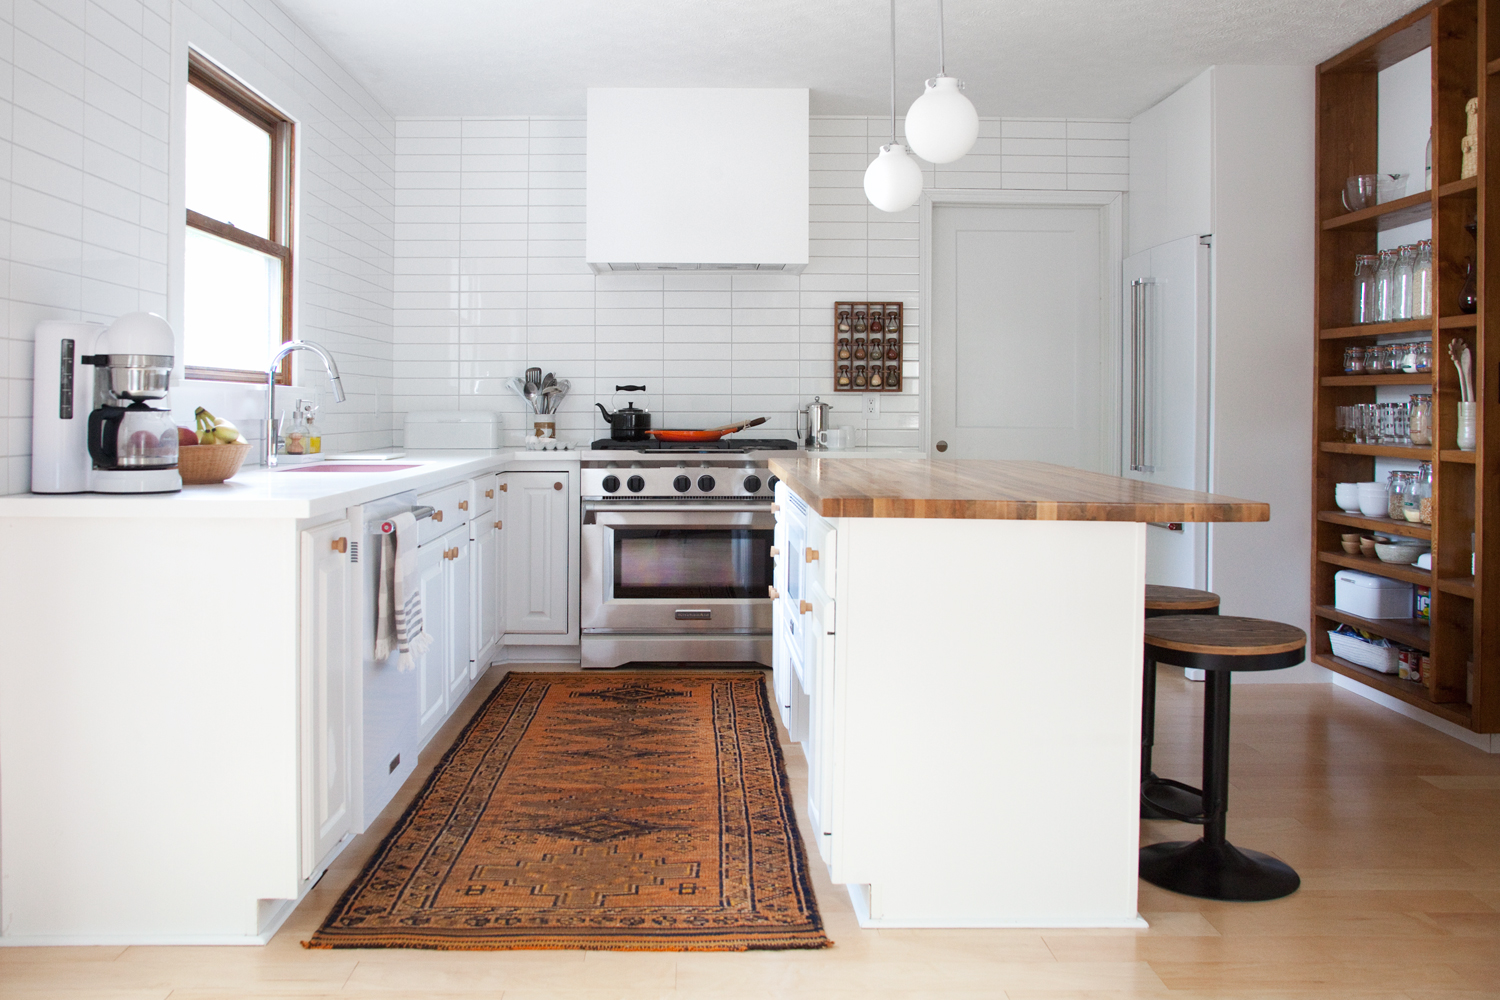 kitchen renovation Making Nice in the Midwest